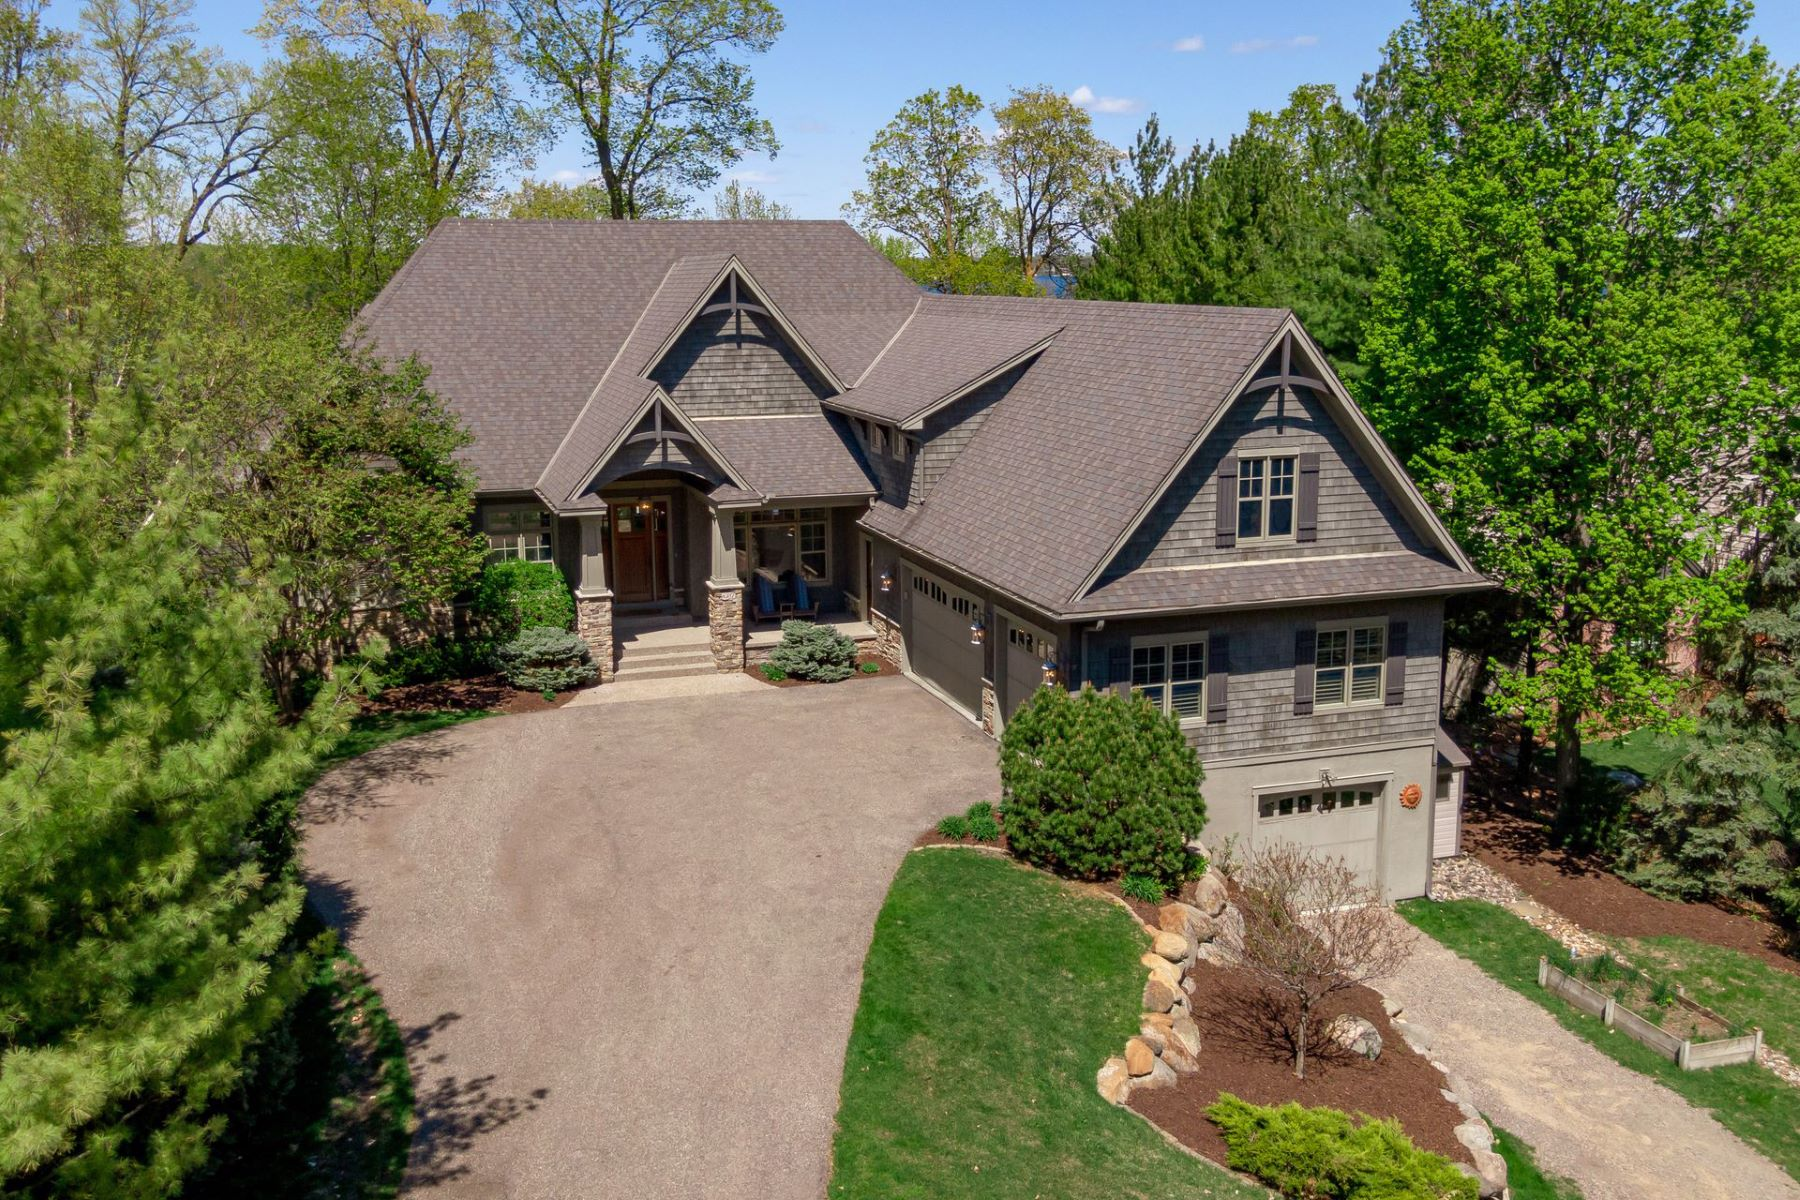 Single Family Homes for Sale at Over 100 Feet of Lake Minnetonka Lakeshore; Turnkey Home with Designer Details 6387 Cliffwood Circle Victoria, Minnesota 55331 United States